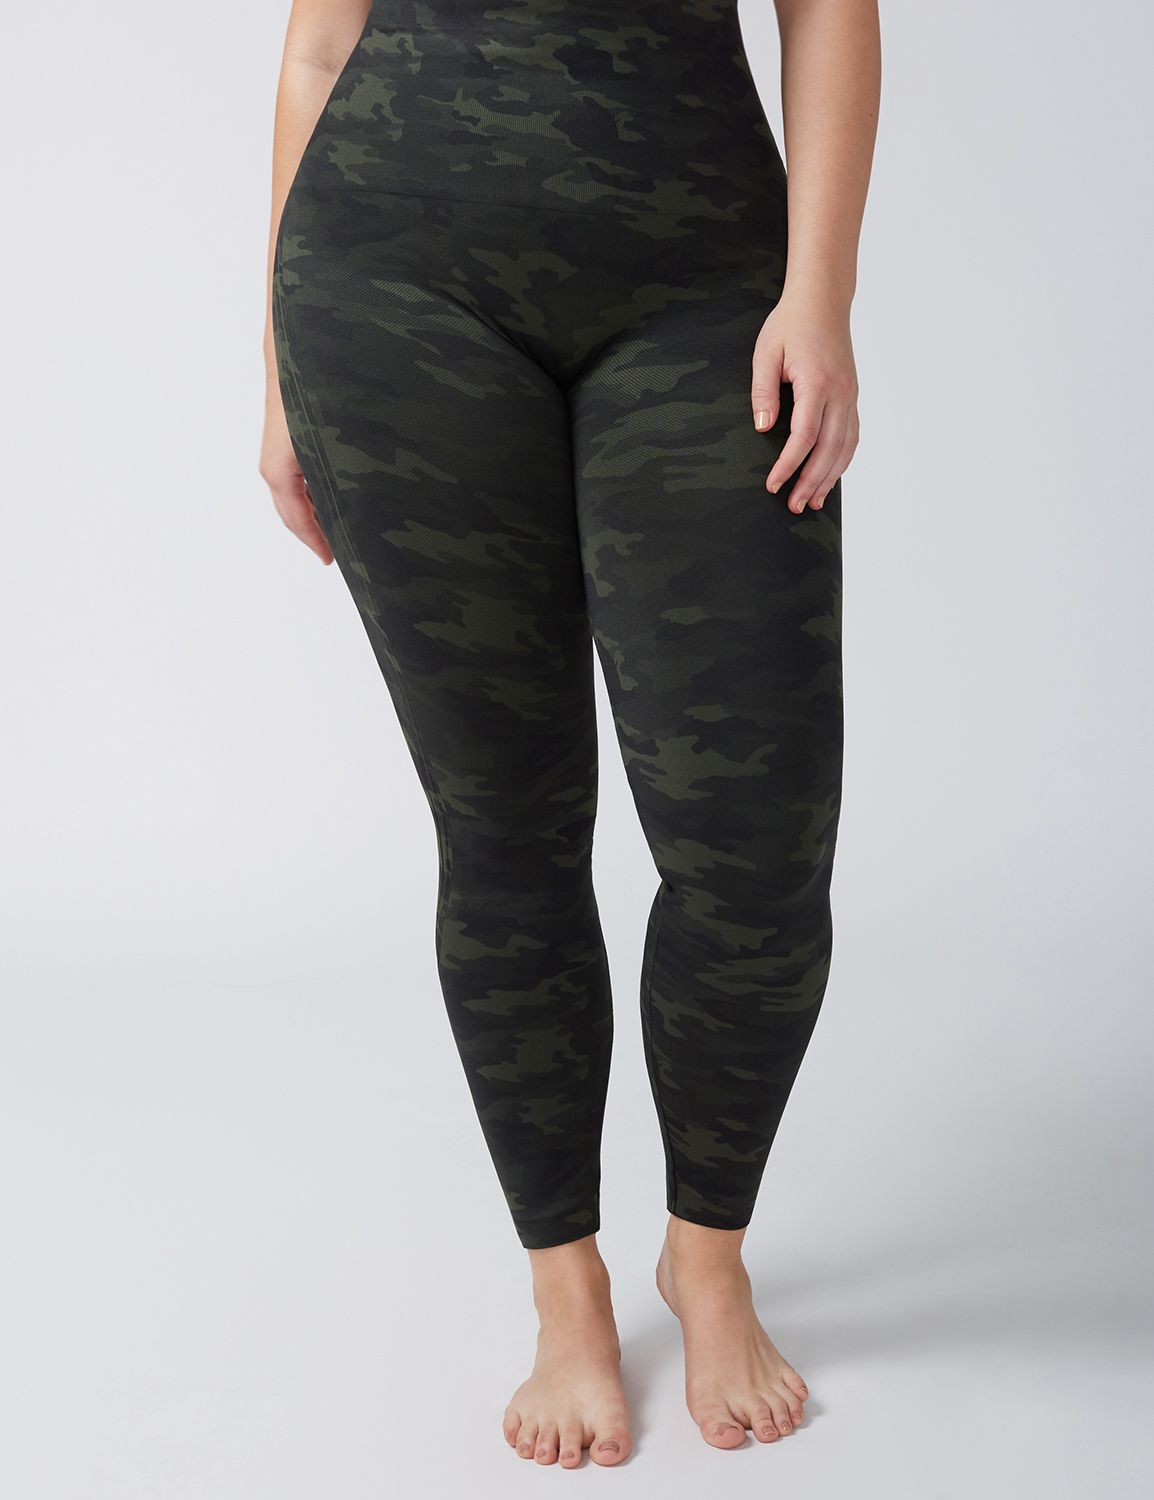 Lane Bryant Womens Spanx & Reg Look At Me Now Seamless Legging 1X Green Camo-Spanx